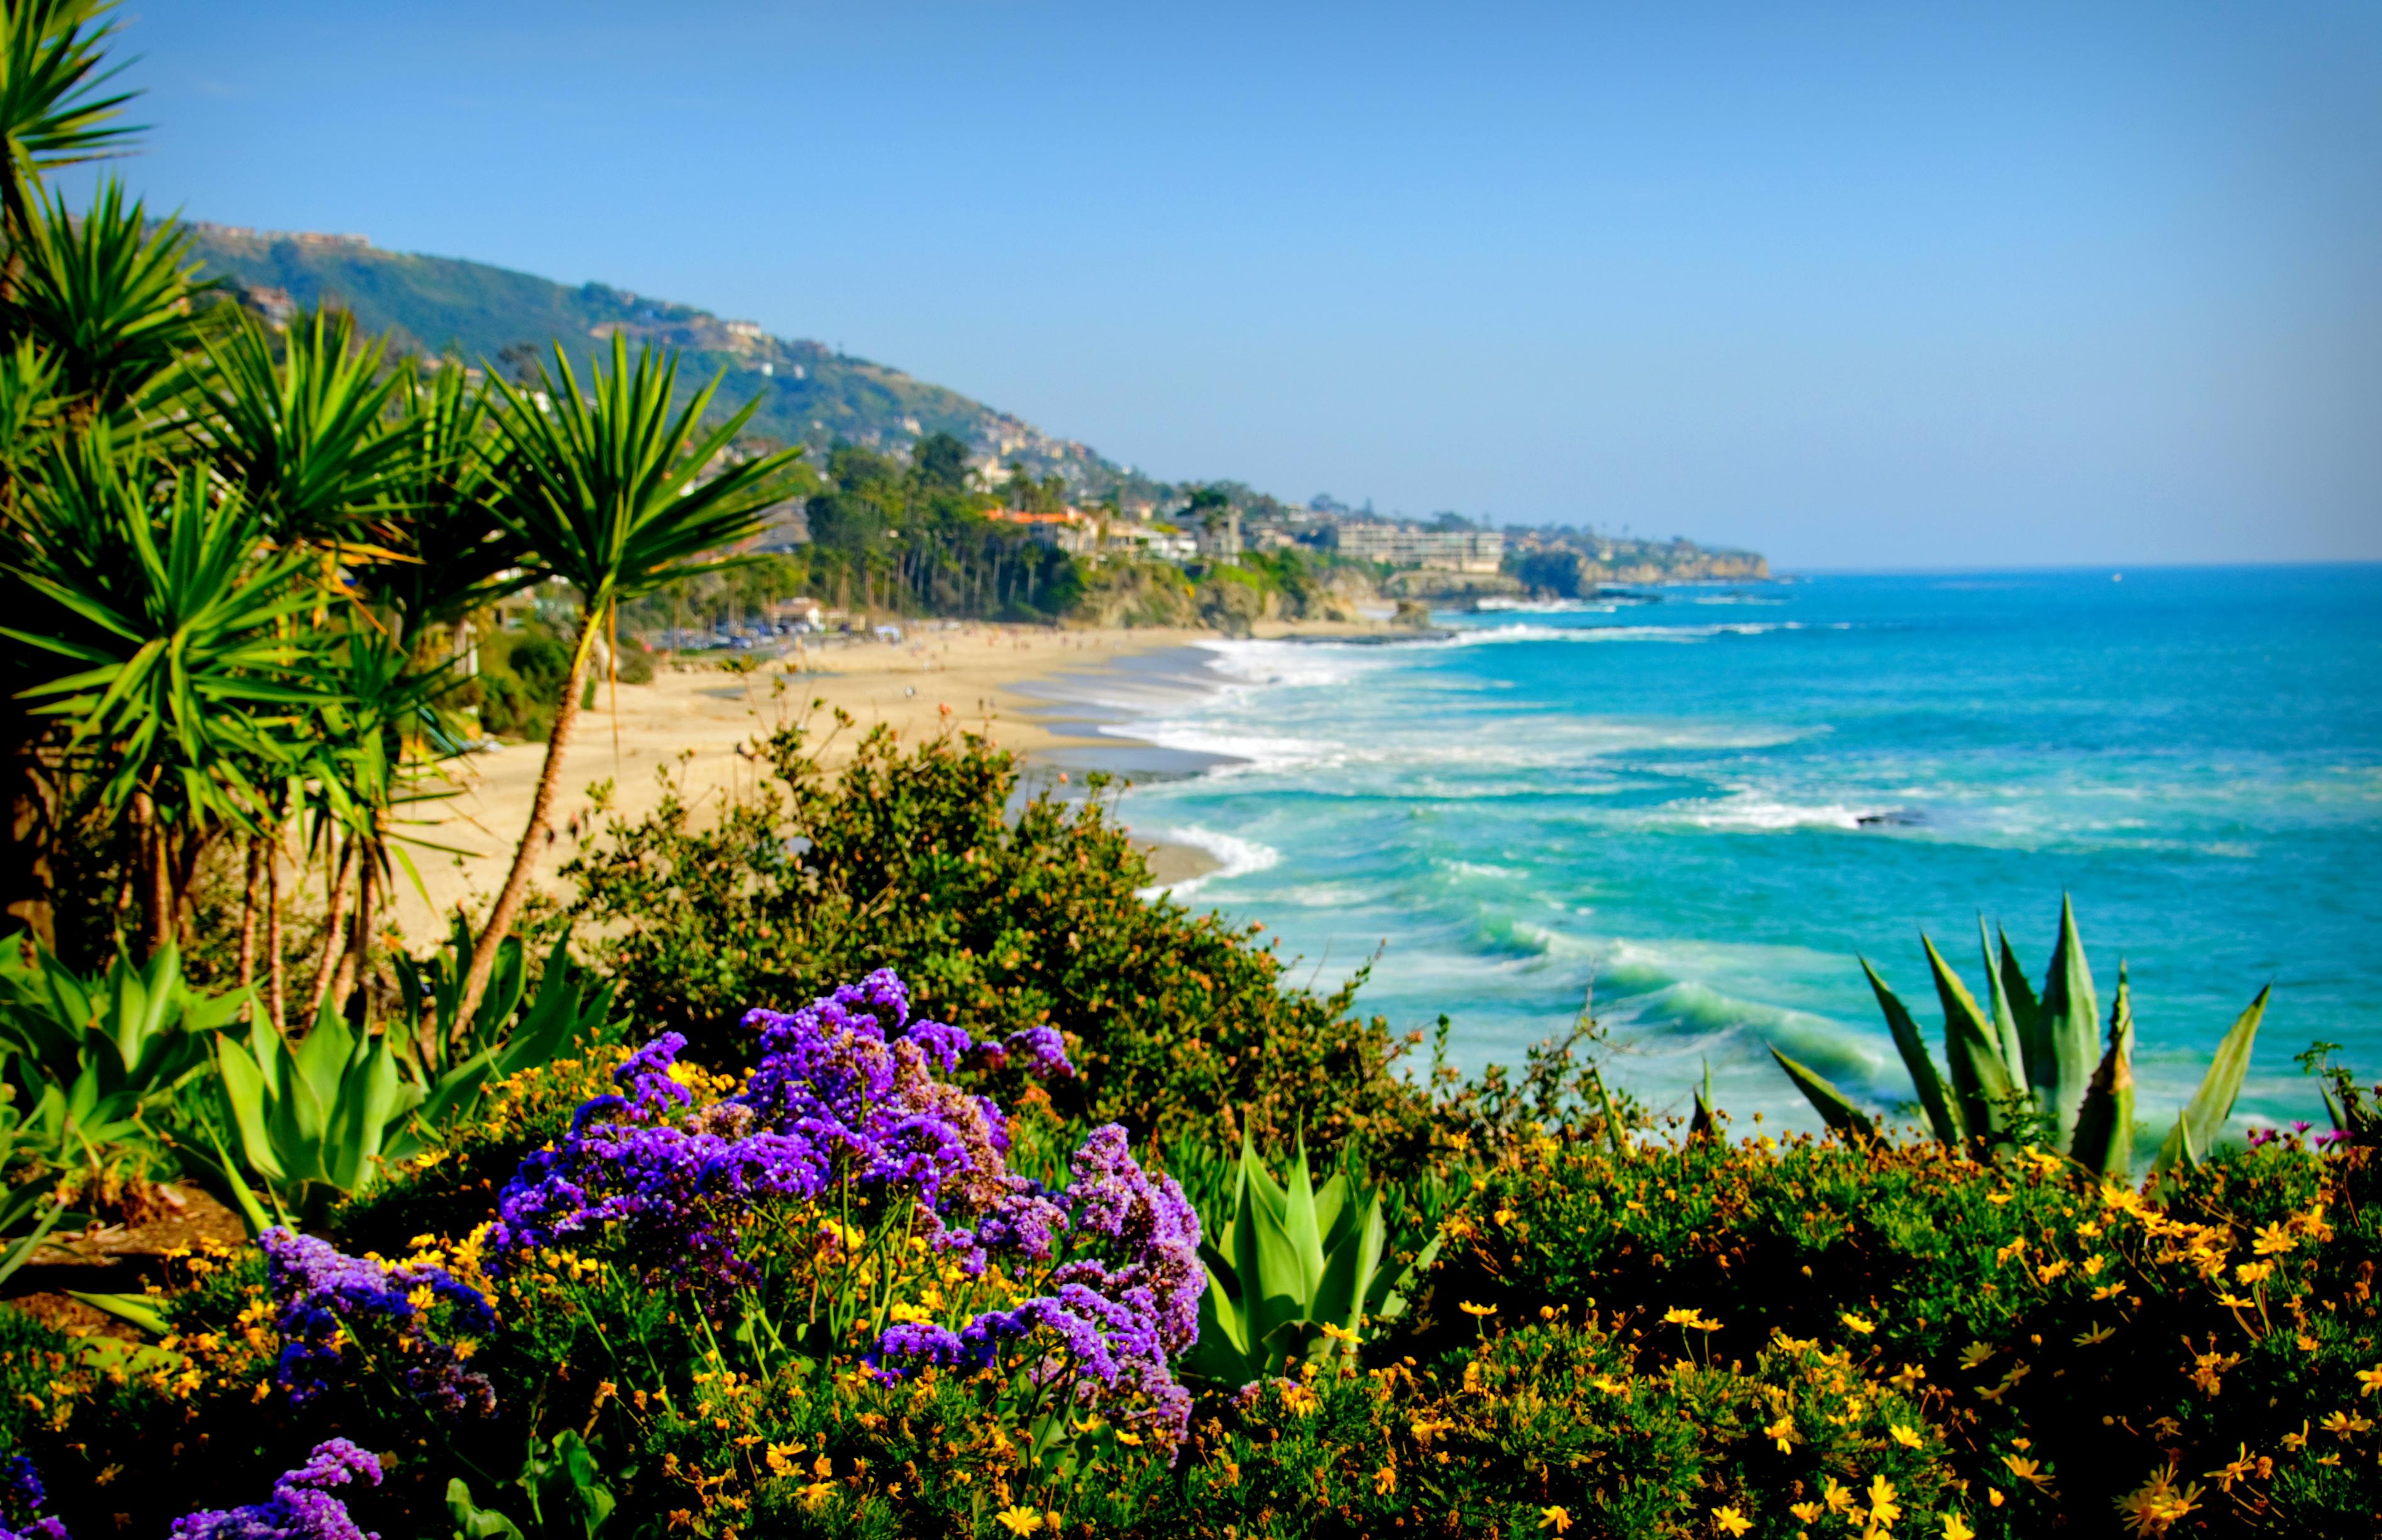 California Beach Wallpaper 3790x2451